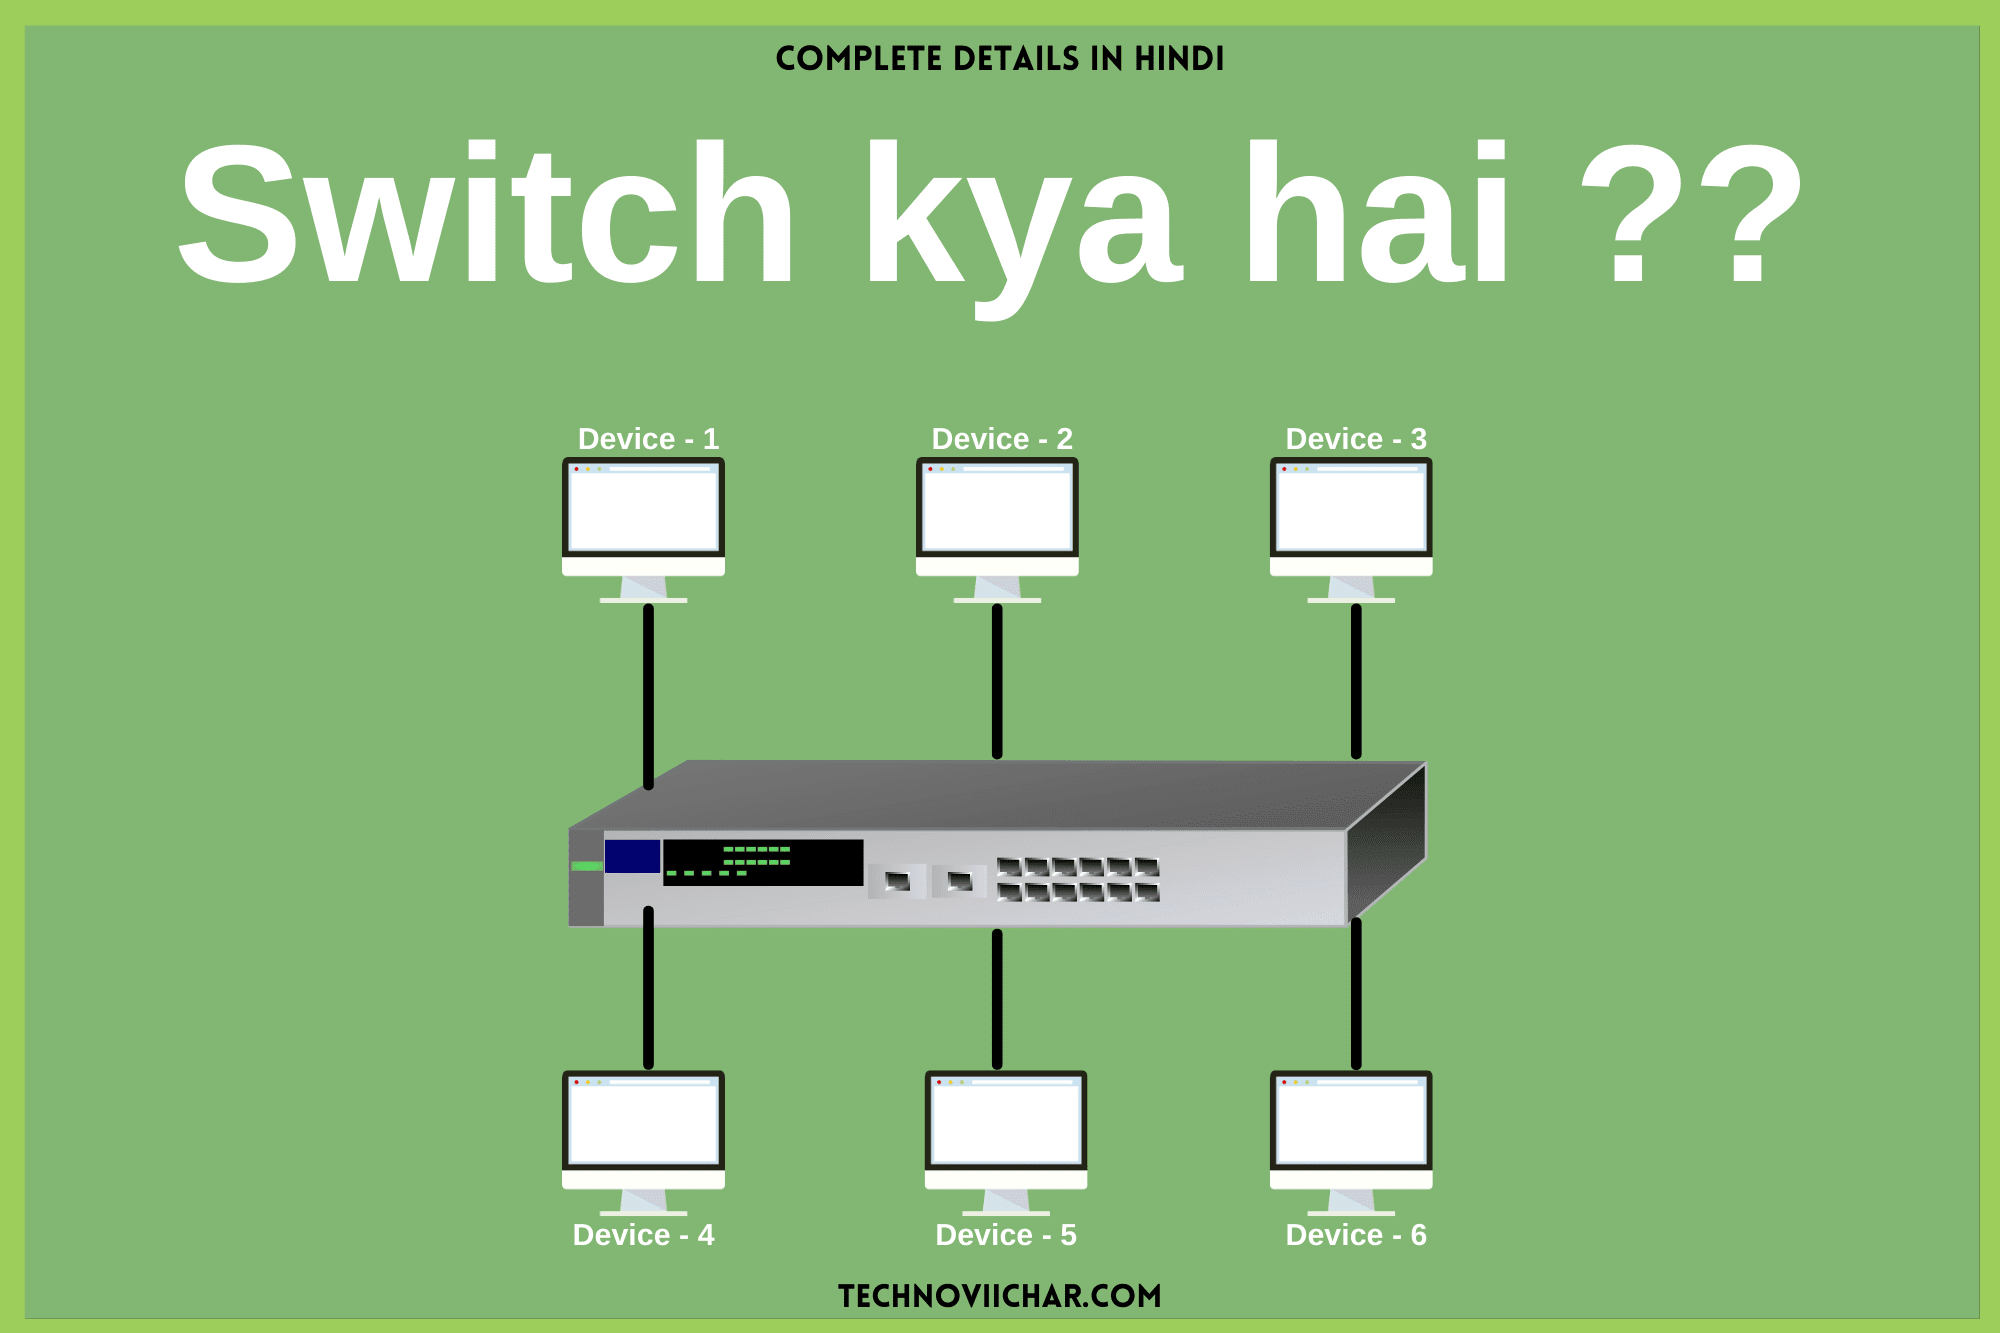 Network Switch in Hindi